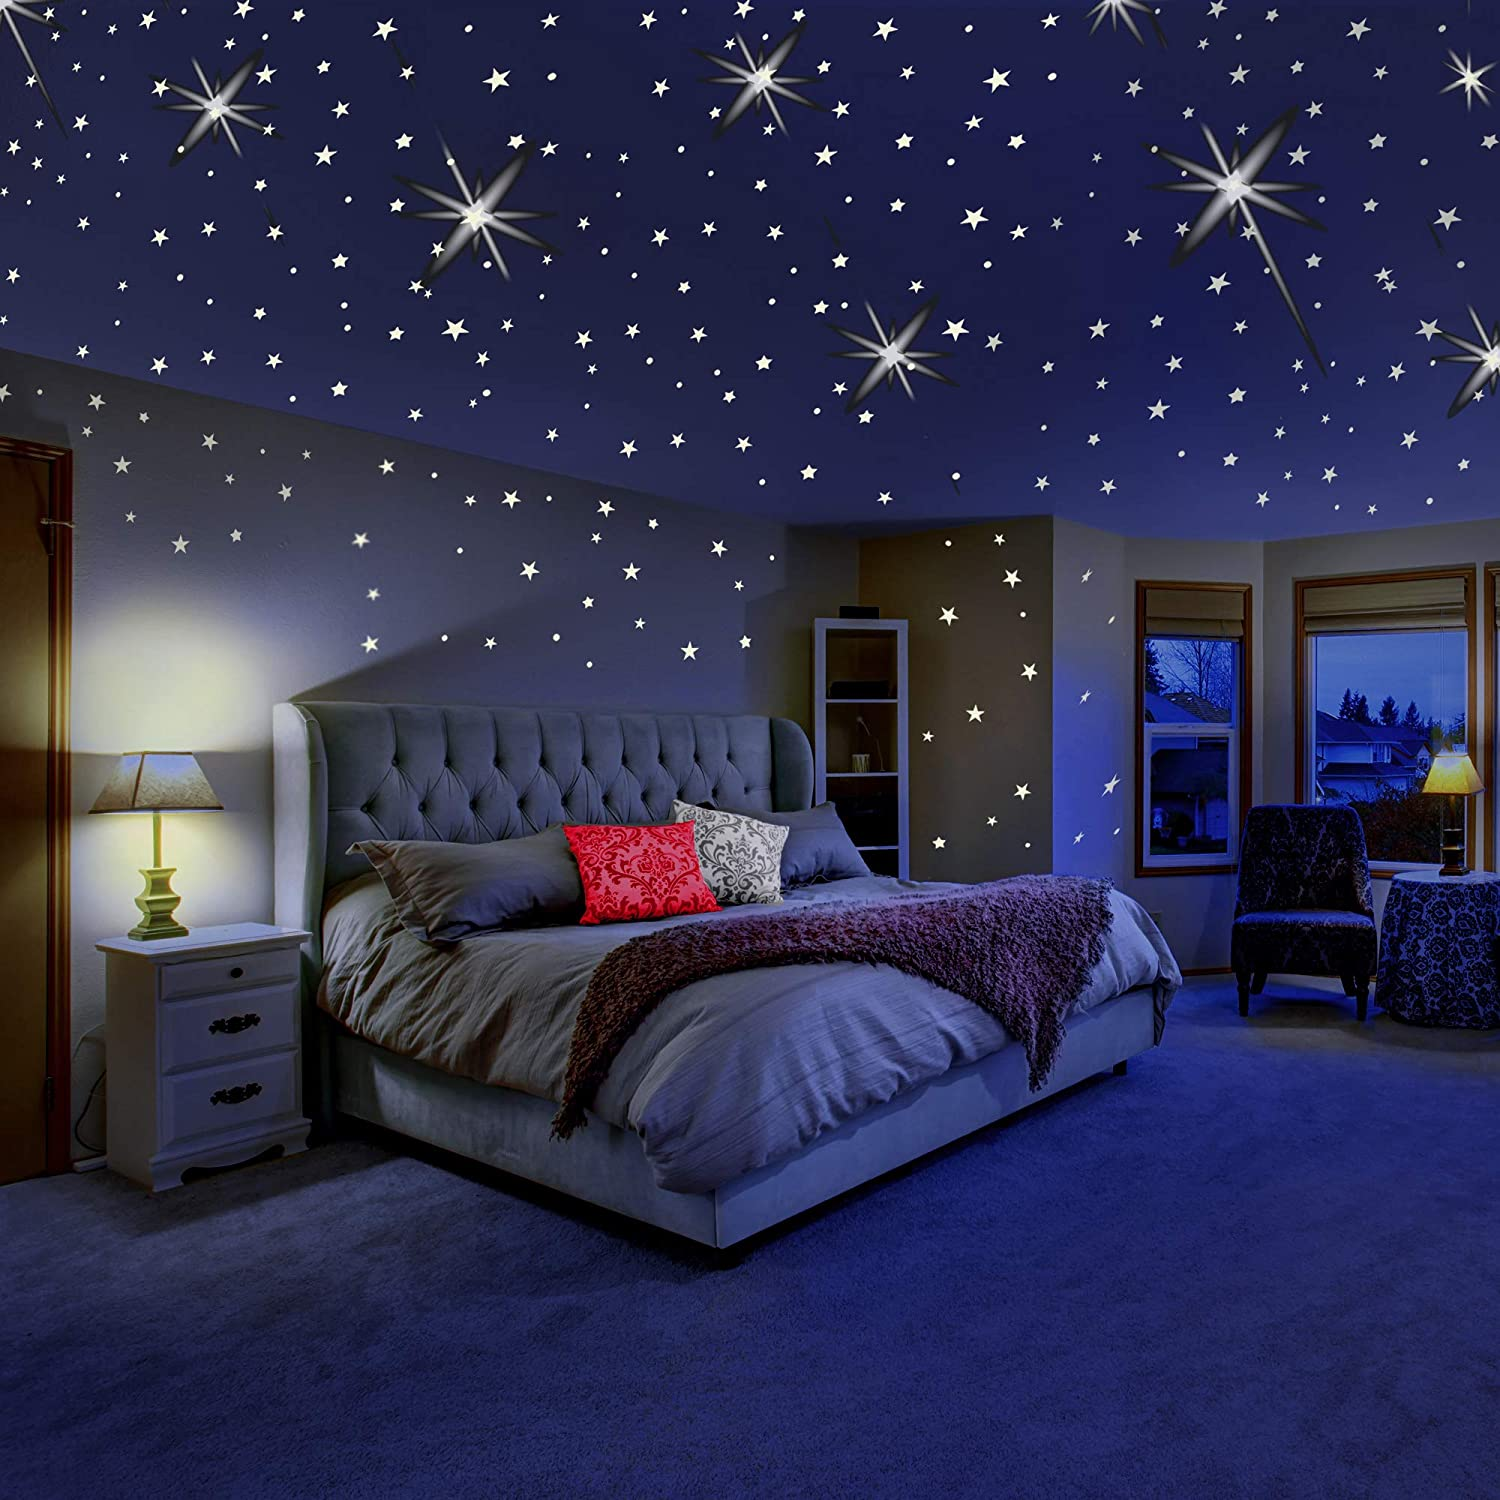 Moon and Dots for Ceiling and Wall Decals 360 PCS Luminous Stars Glow in The Dark Stars Wall Stickers Green Stickers Starry Sky Shining Decoration for Kids Bedding Room Bedroom Wall